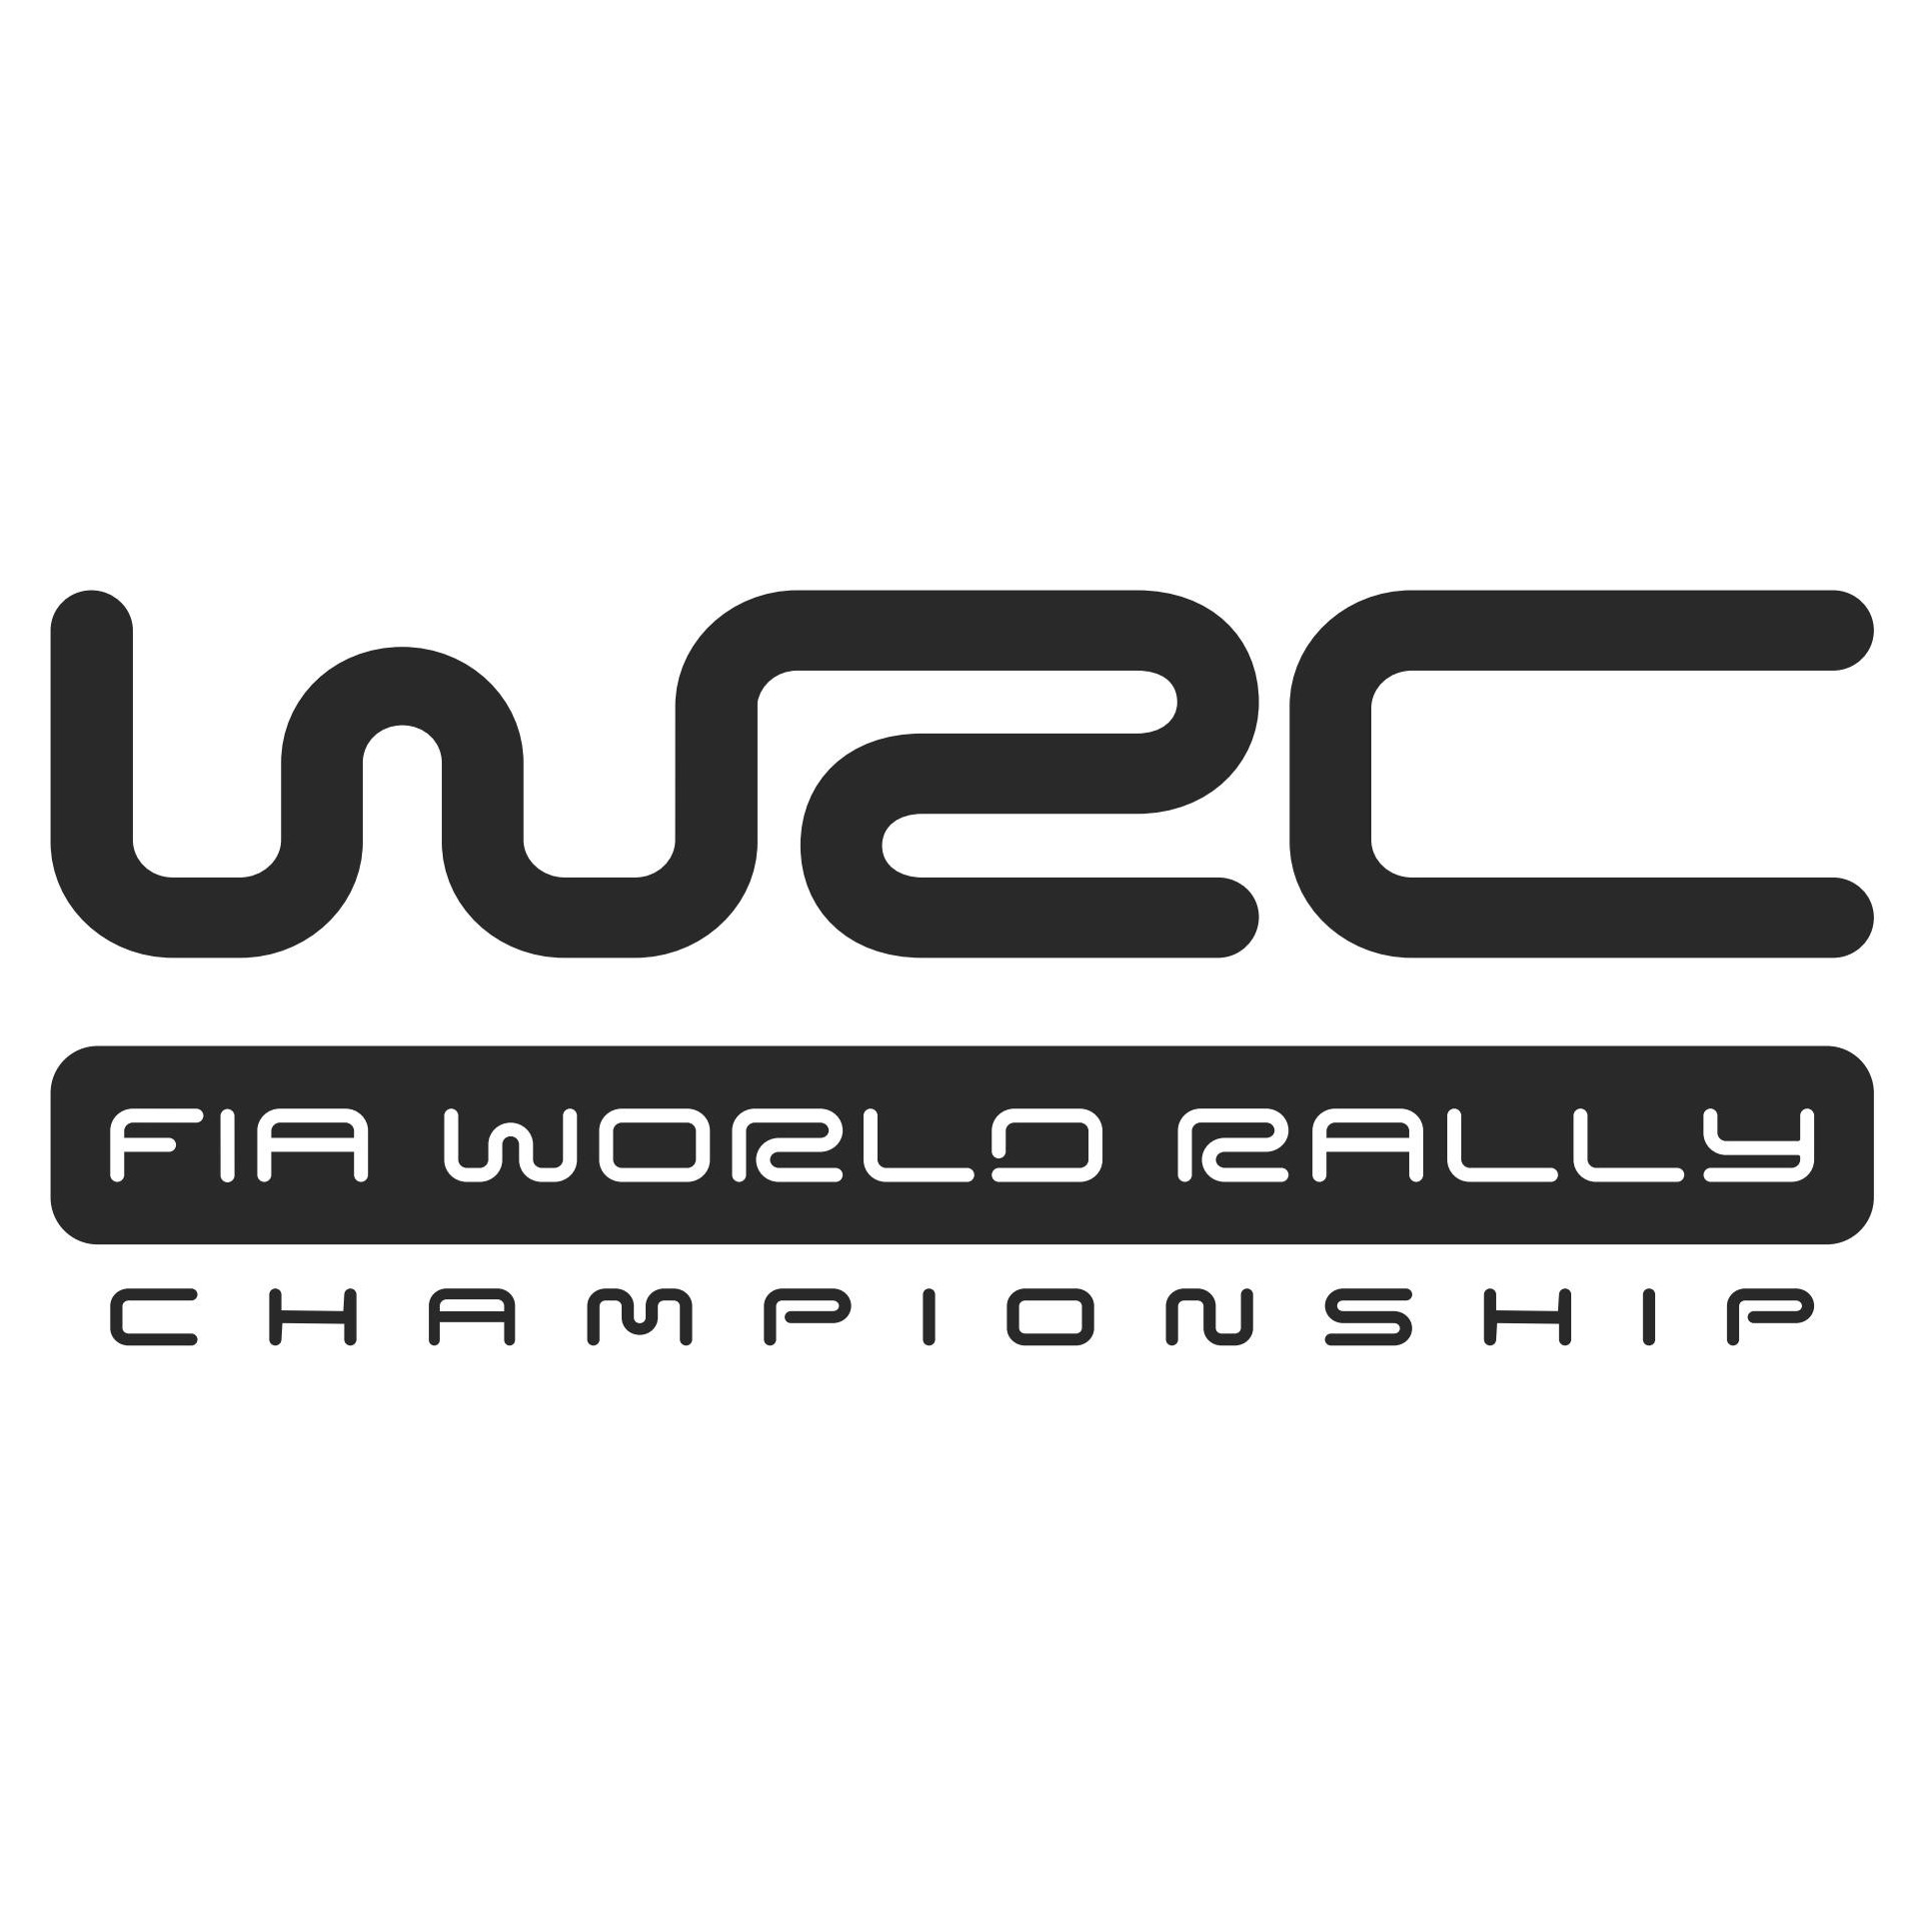 2016 World Rally Championship